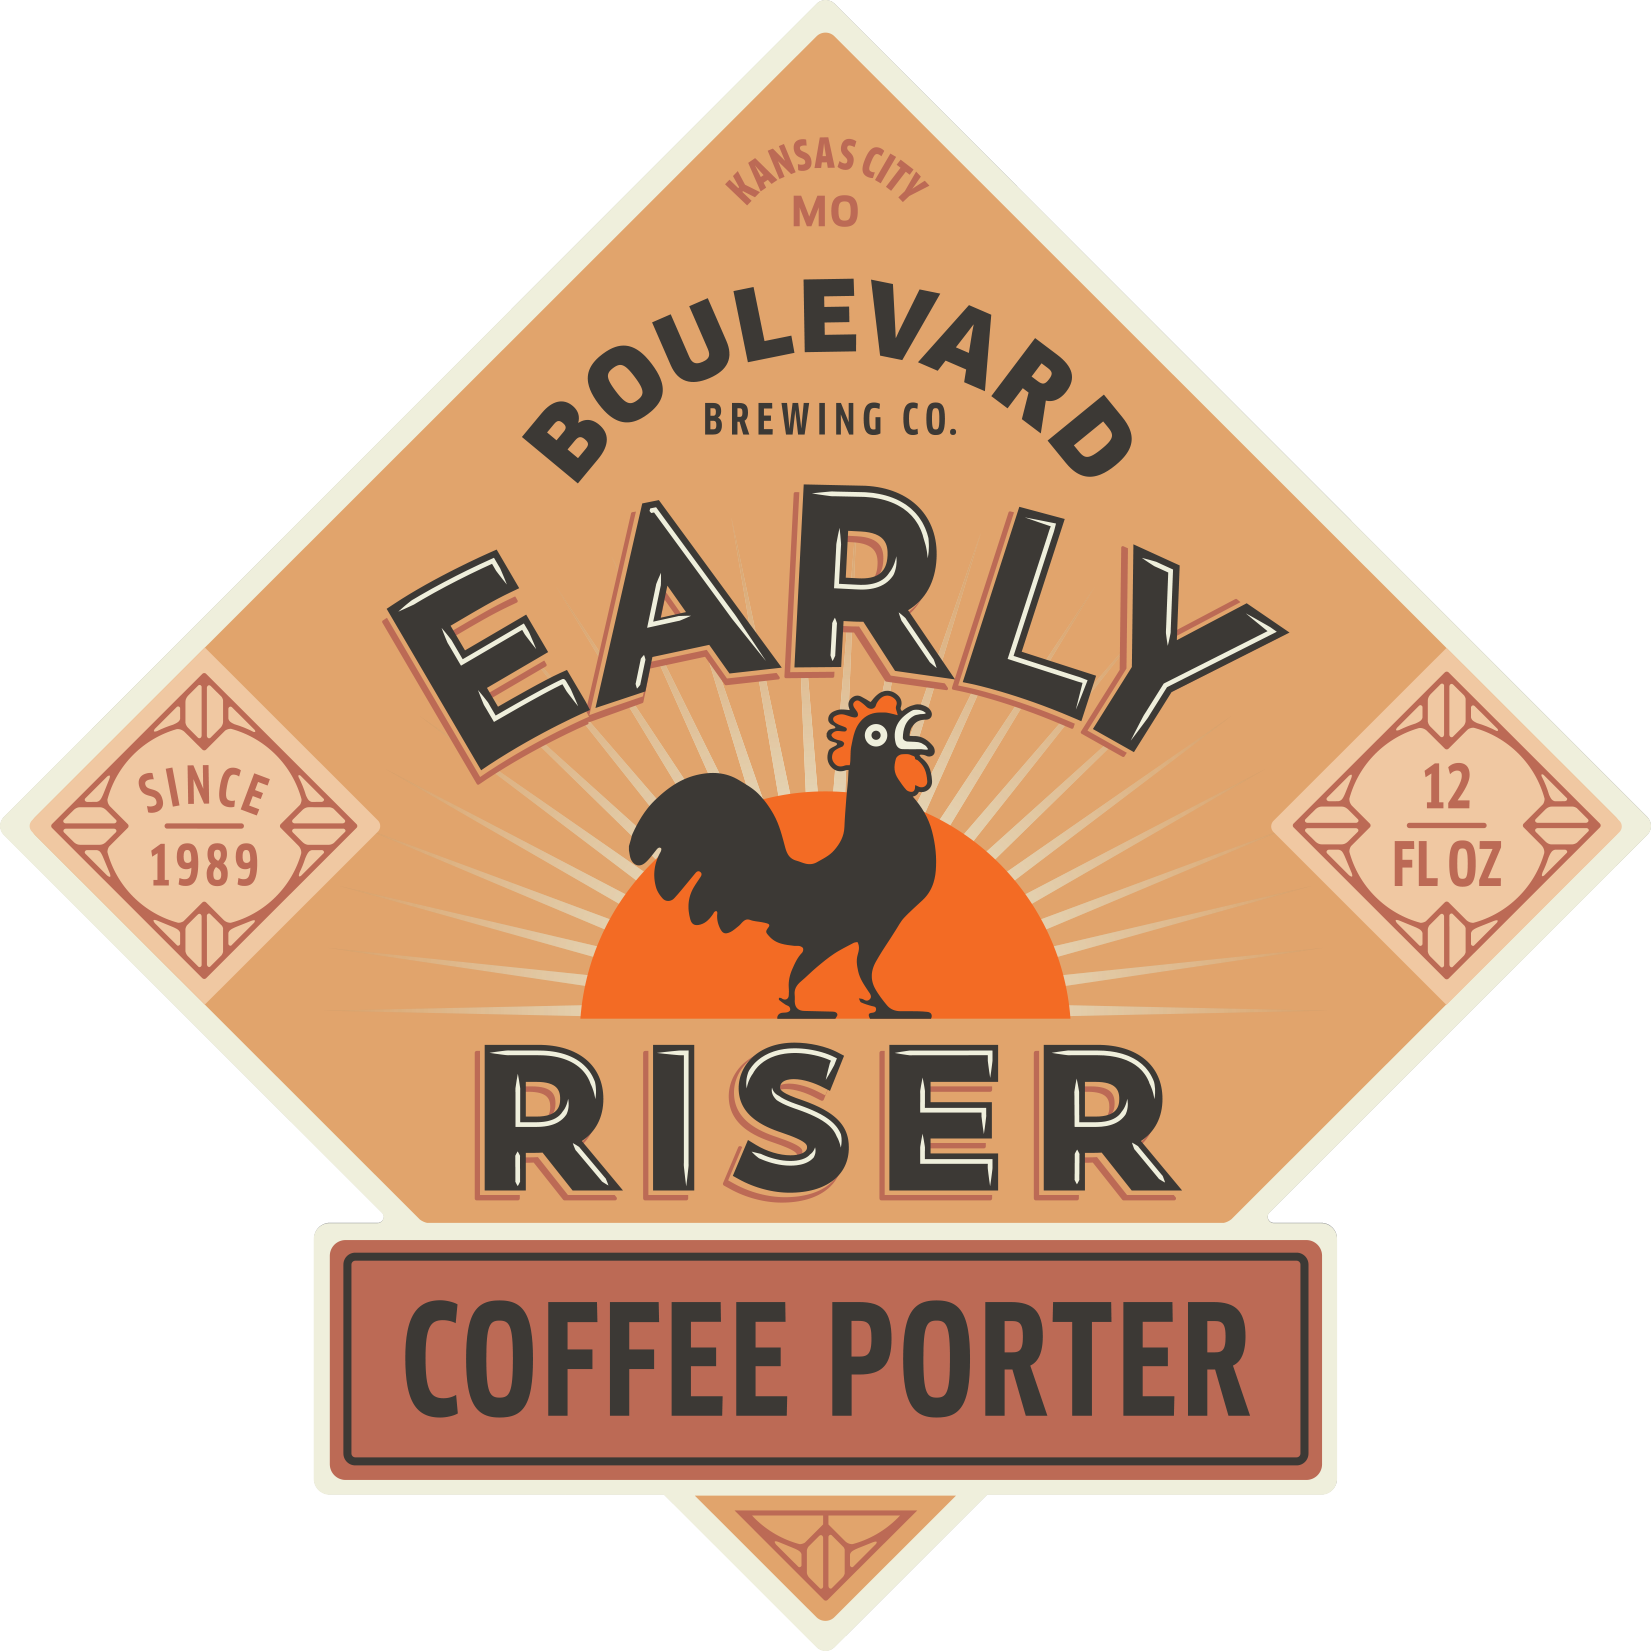 Early Riser Coffee Porter (2021)